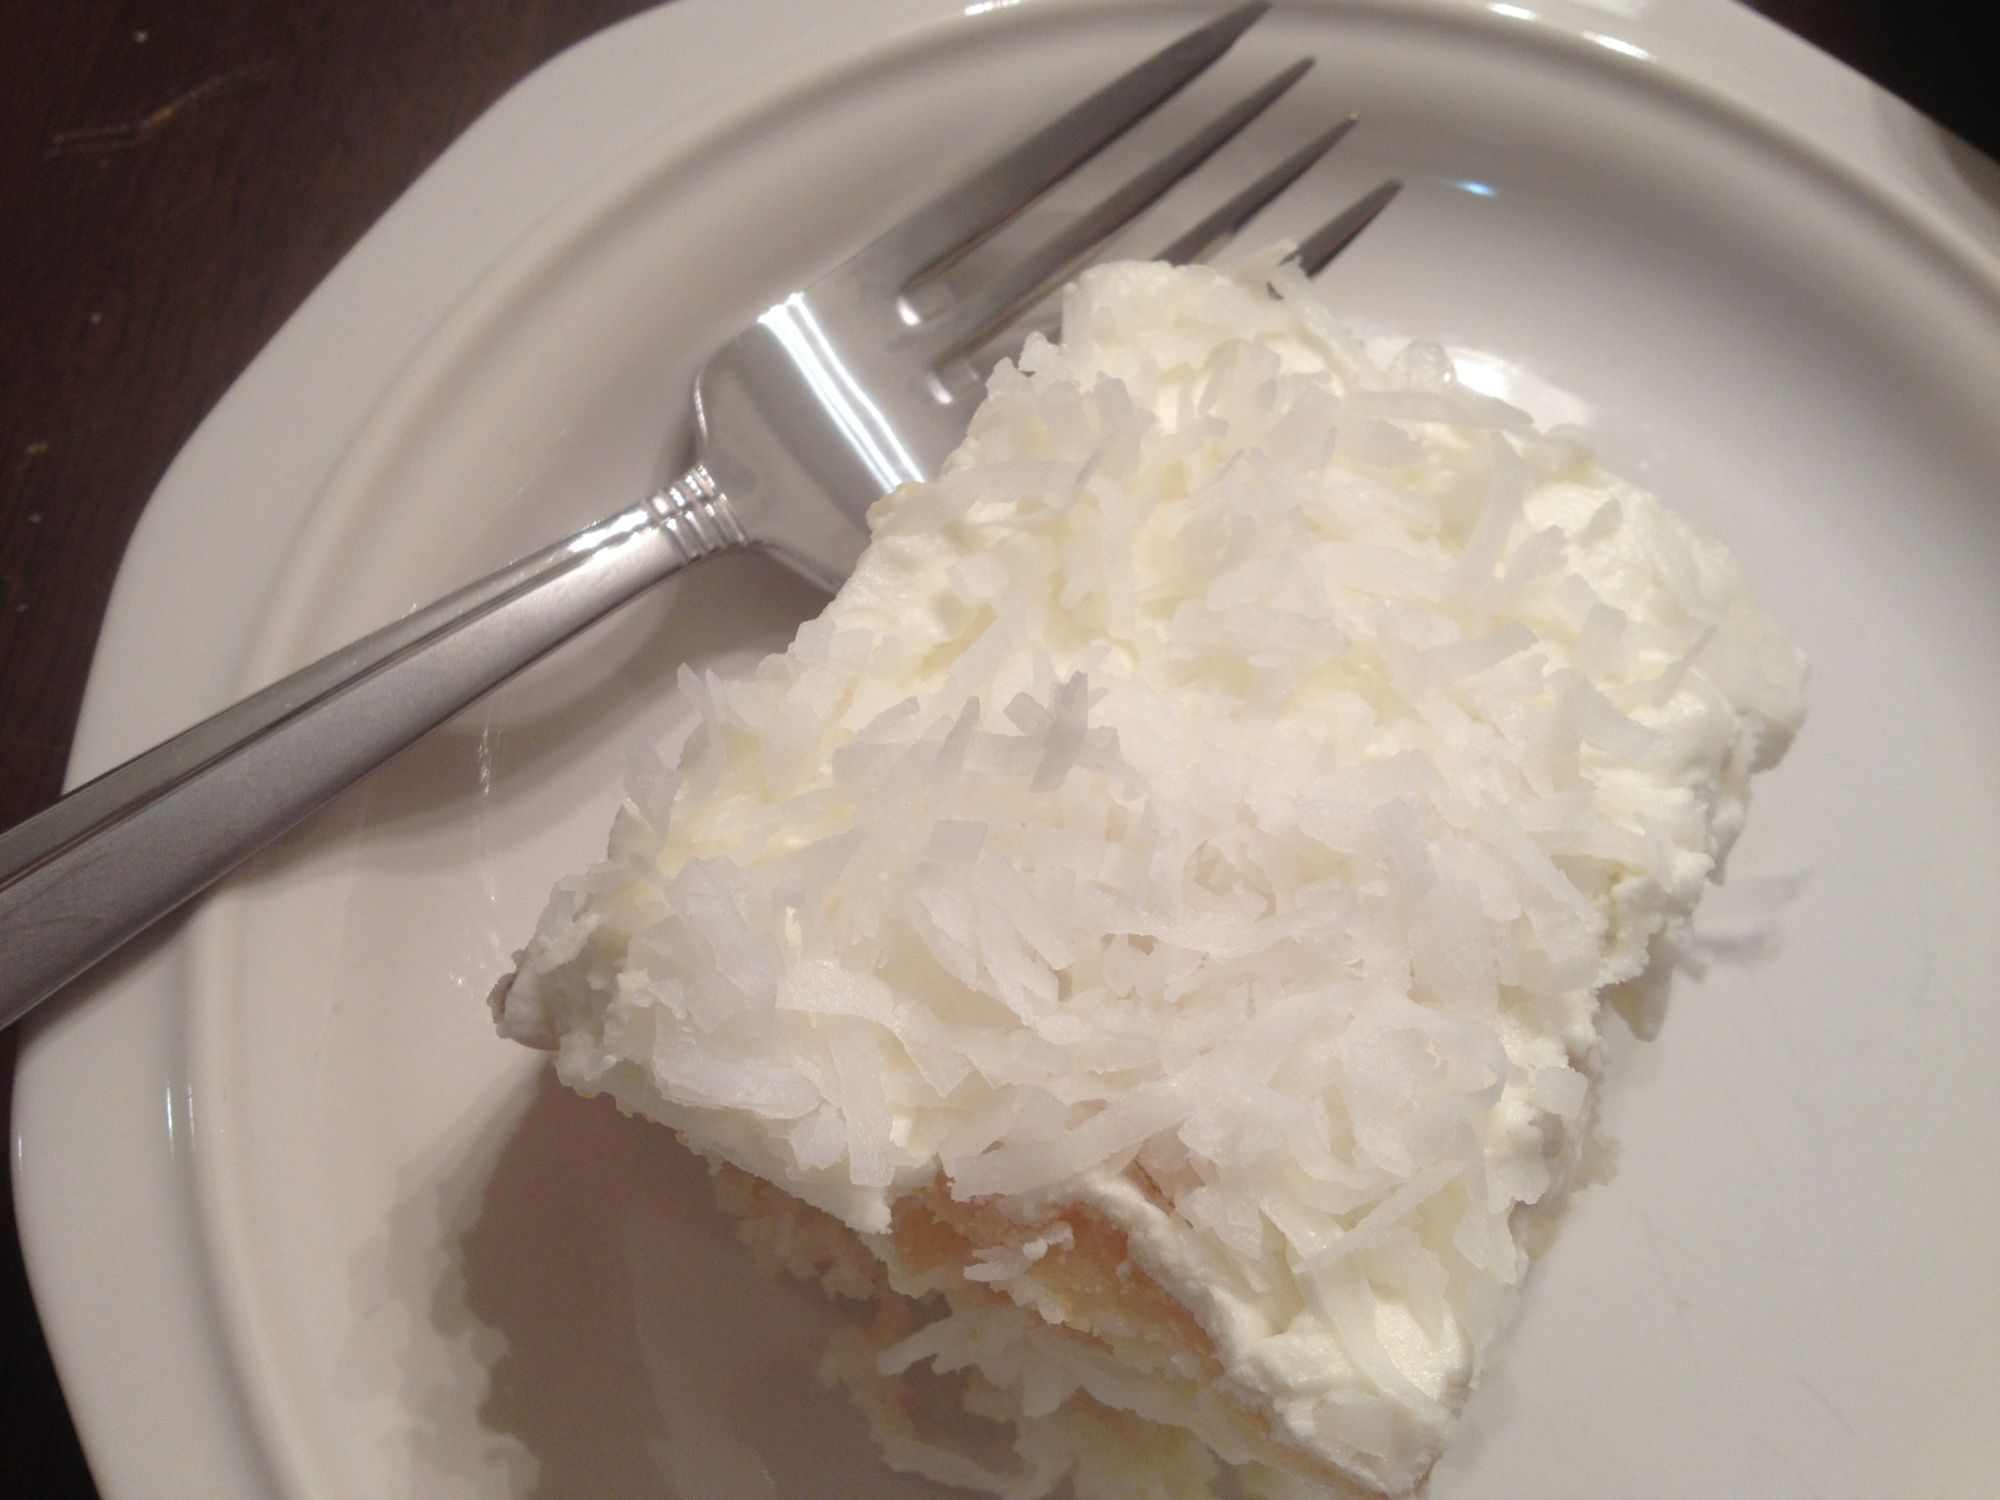 Hot Milk Cake With Coconut Topping